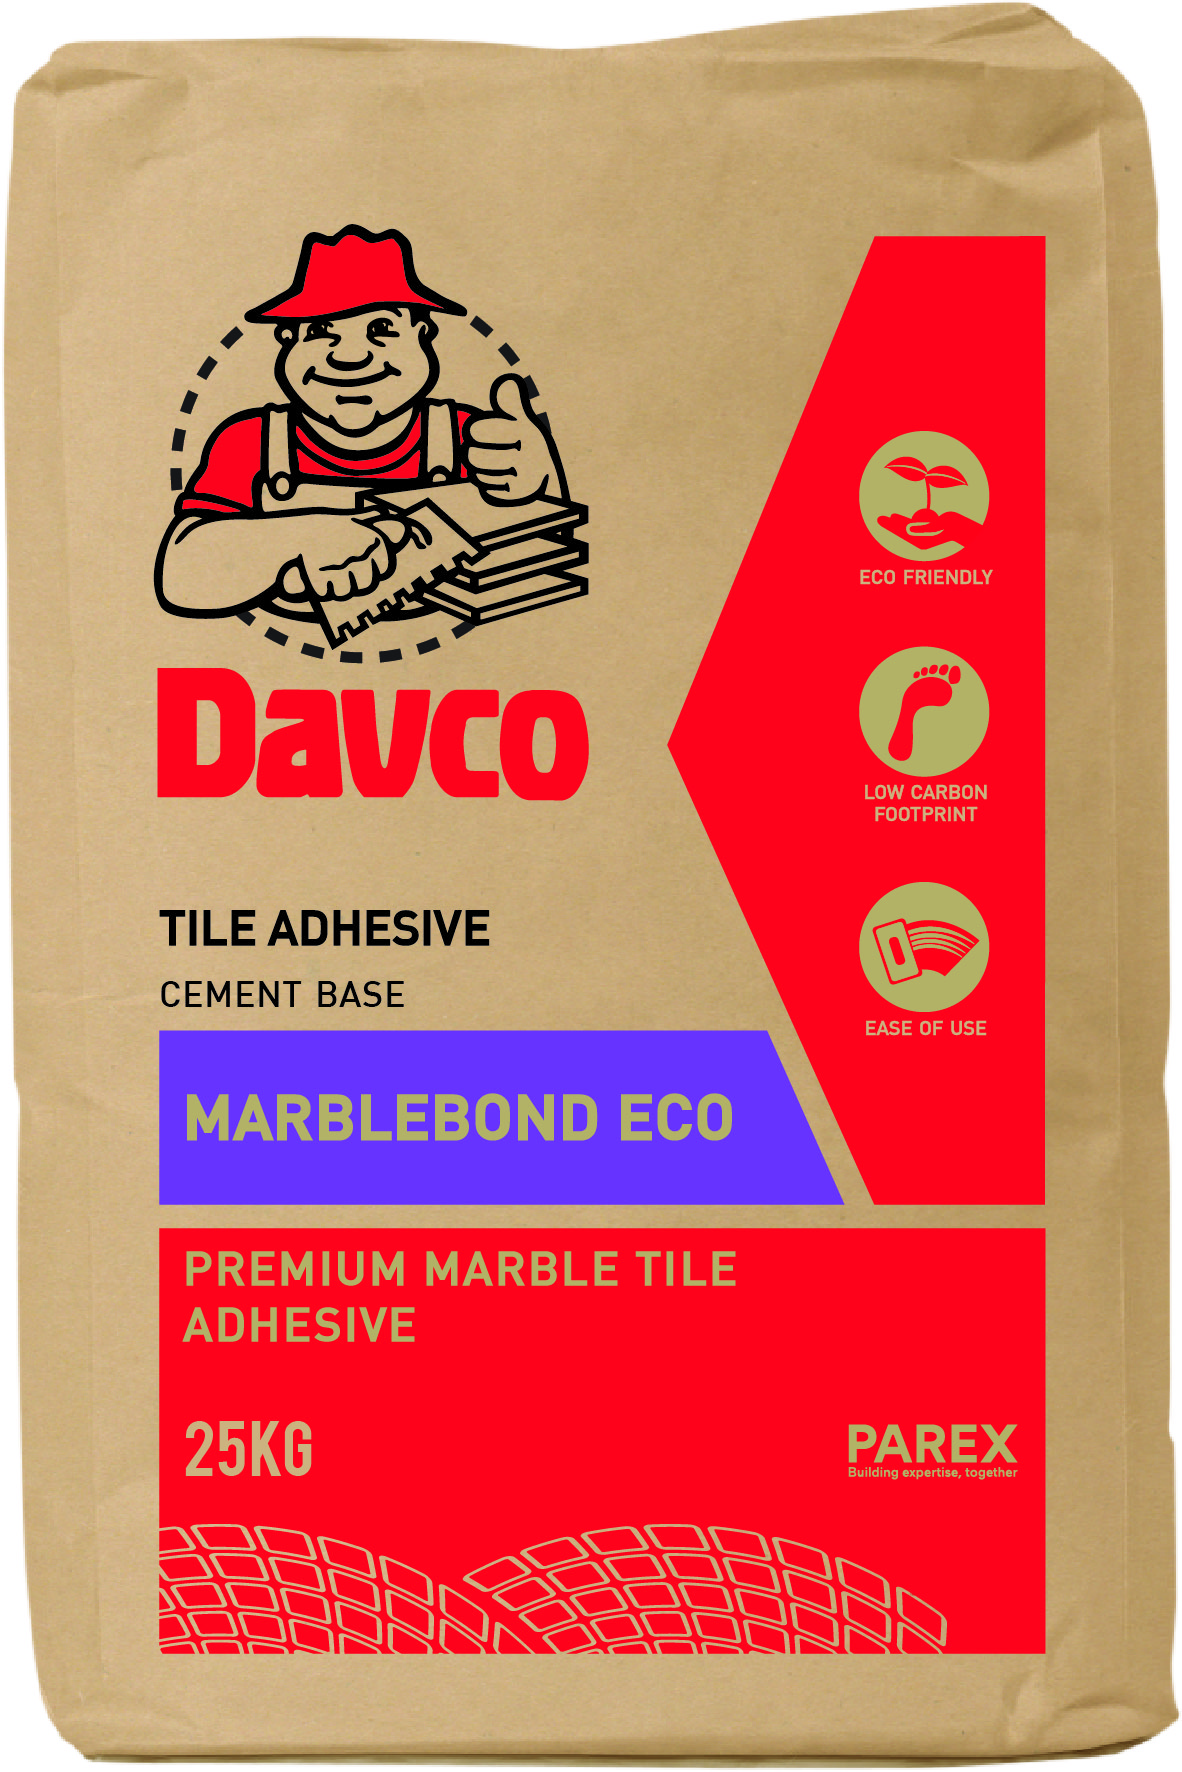 Davco Marblebond ECO Technical Specification